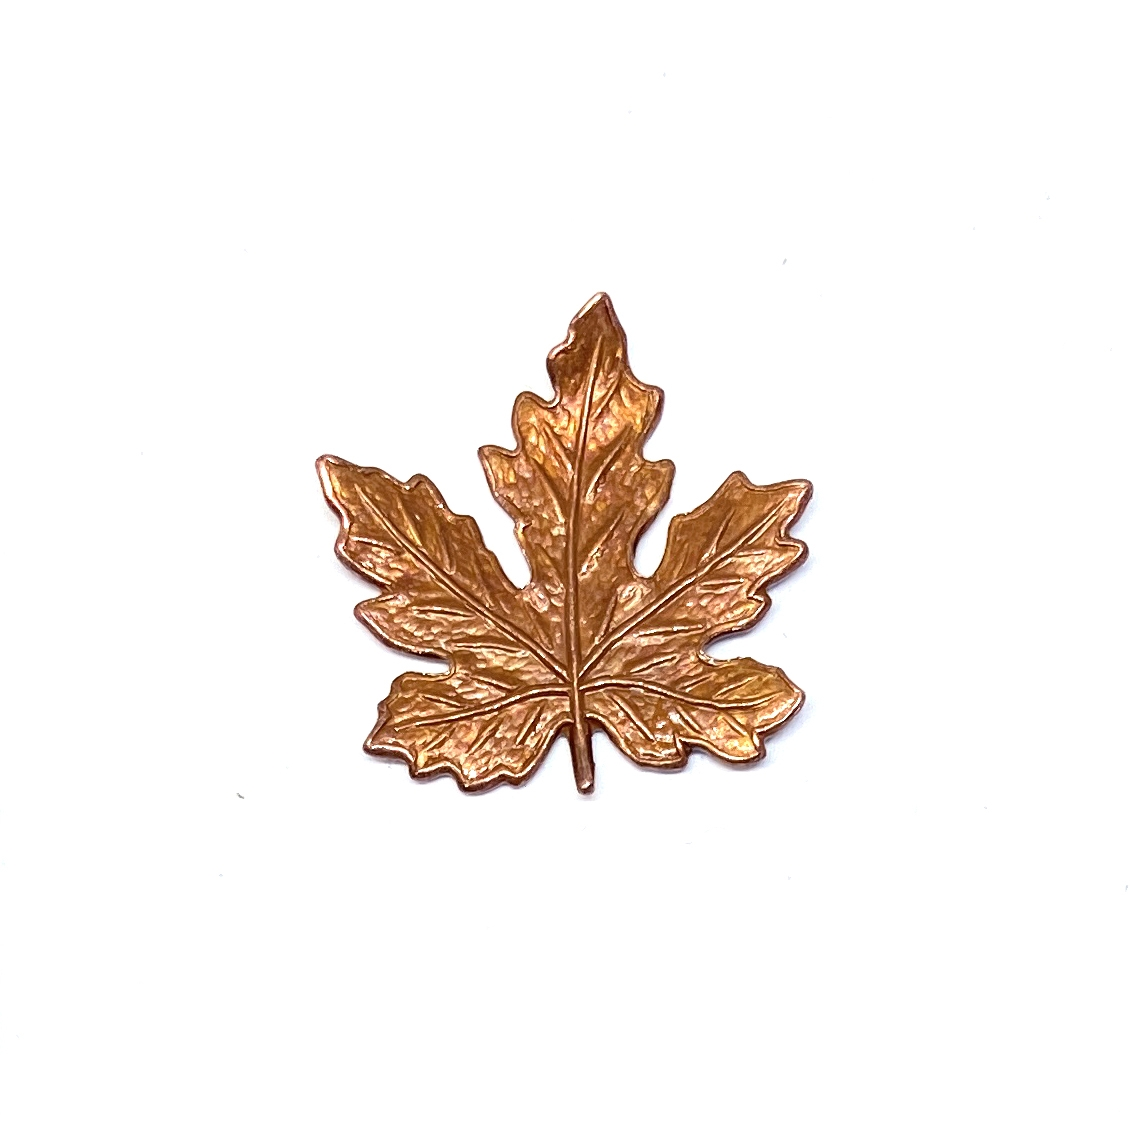 brass leaves, maple leaves, jewelry supplies, 01686, 21mm, B'sue Boutiques, US Made jewelry supplies, jewelry making supplies, nickel free jewelry supplies, vintage jewelry supplies, gingerbread brass, antique copper